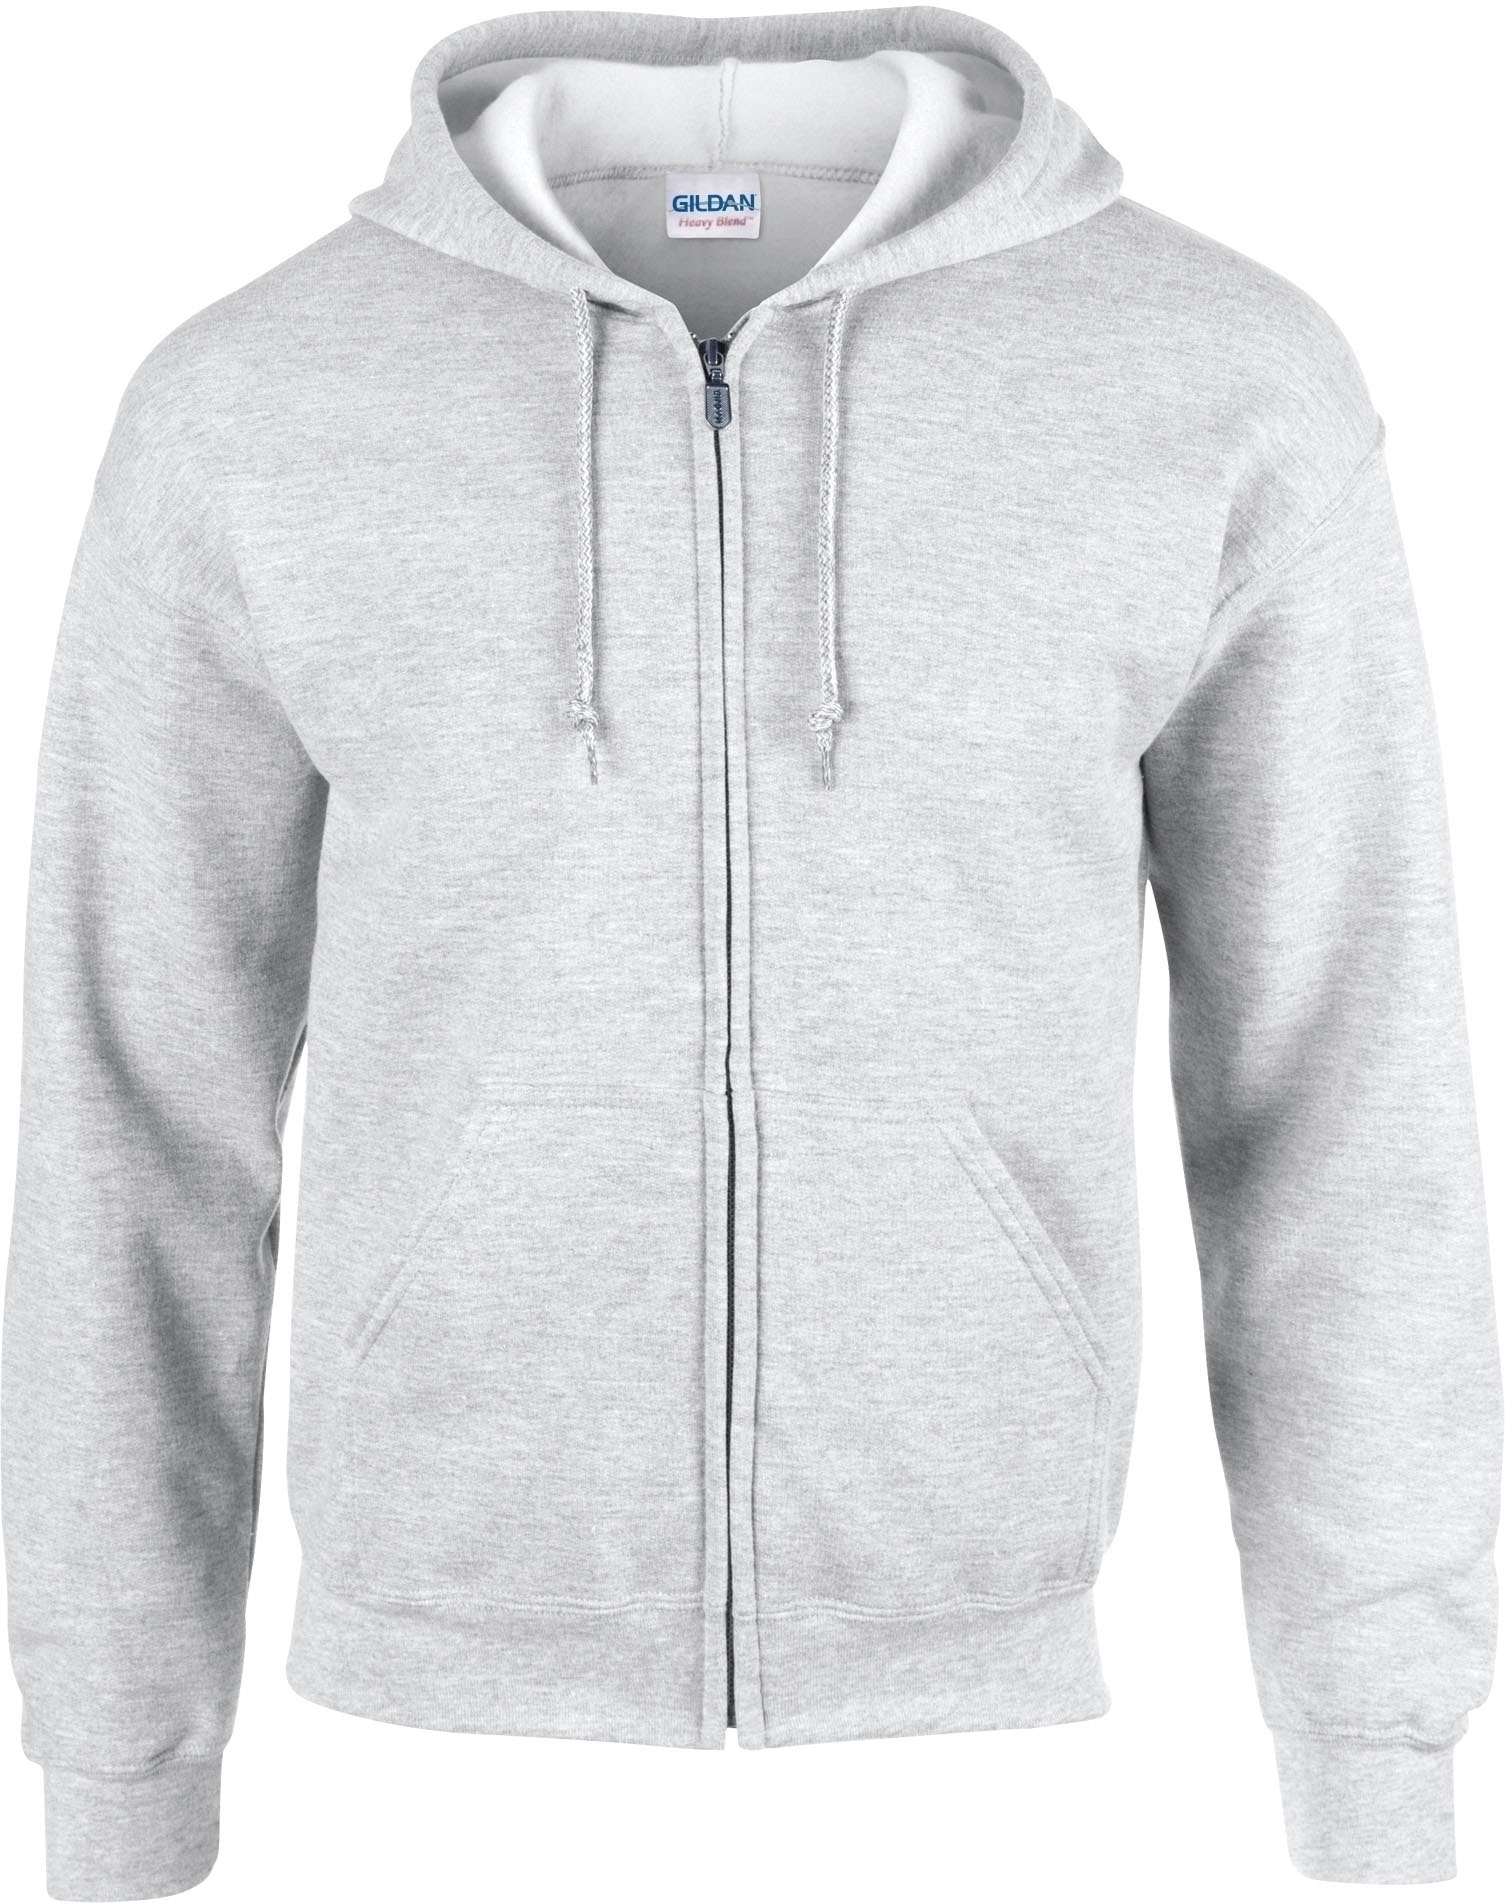 SWEAT SHIRT HOMME ZIPPÉ CAPUCHE HEAVY BLEND™